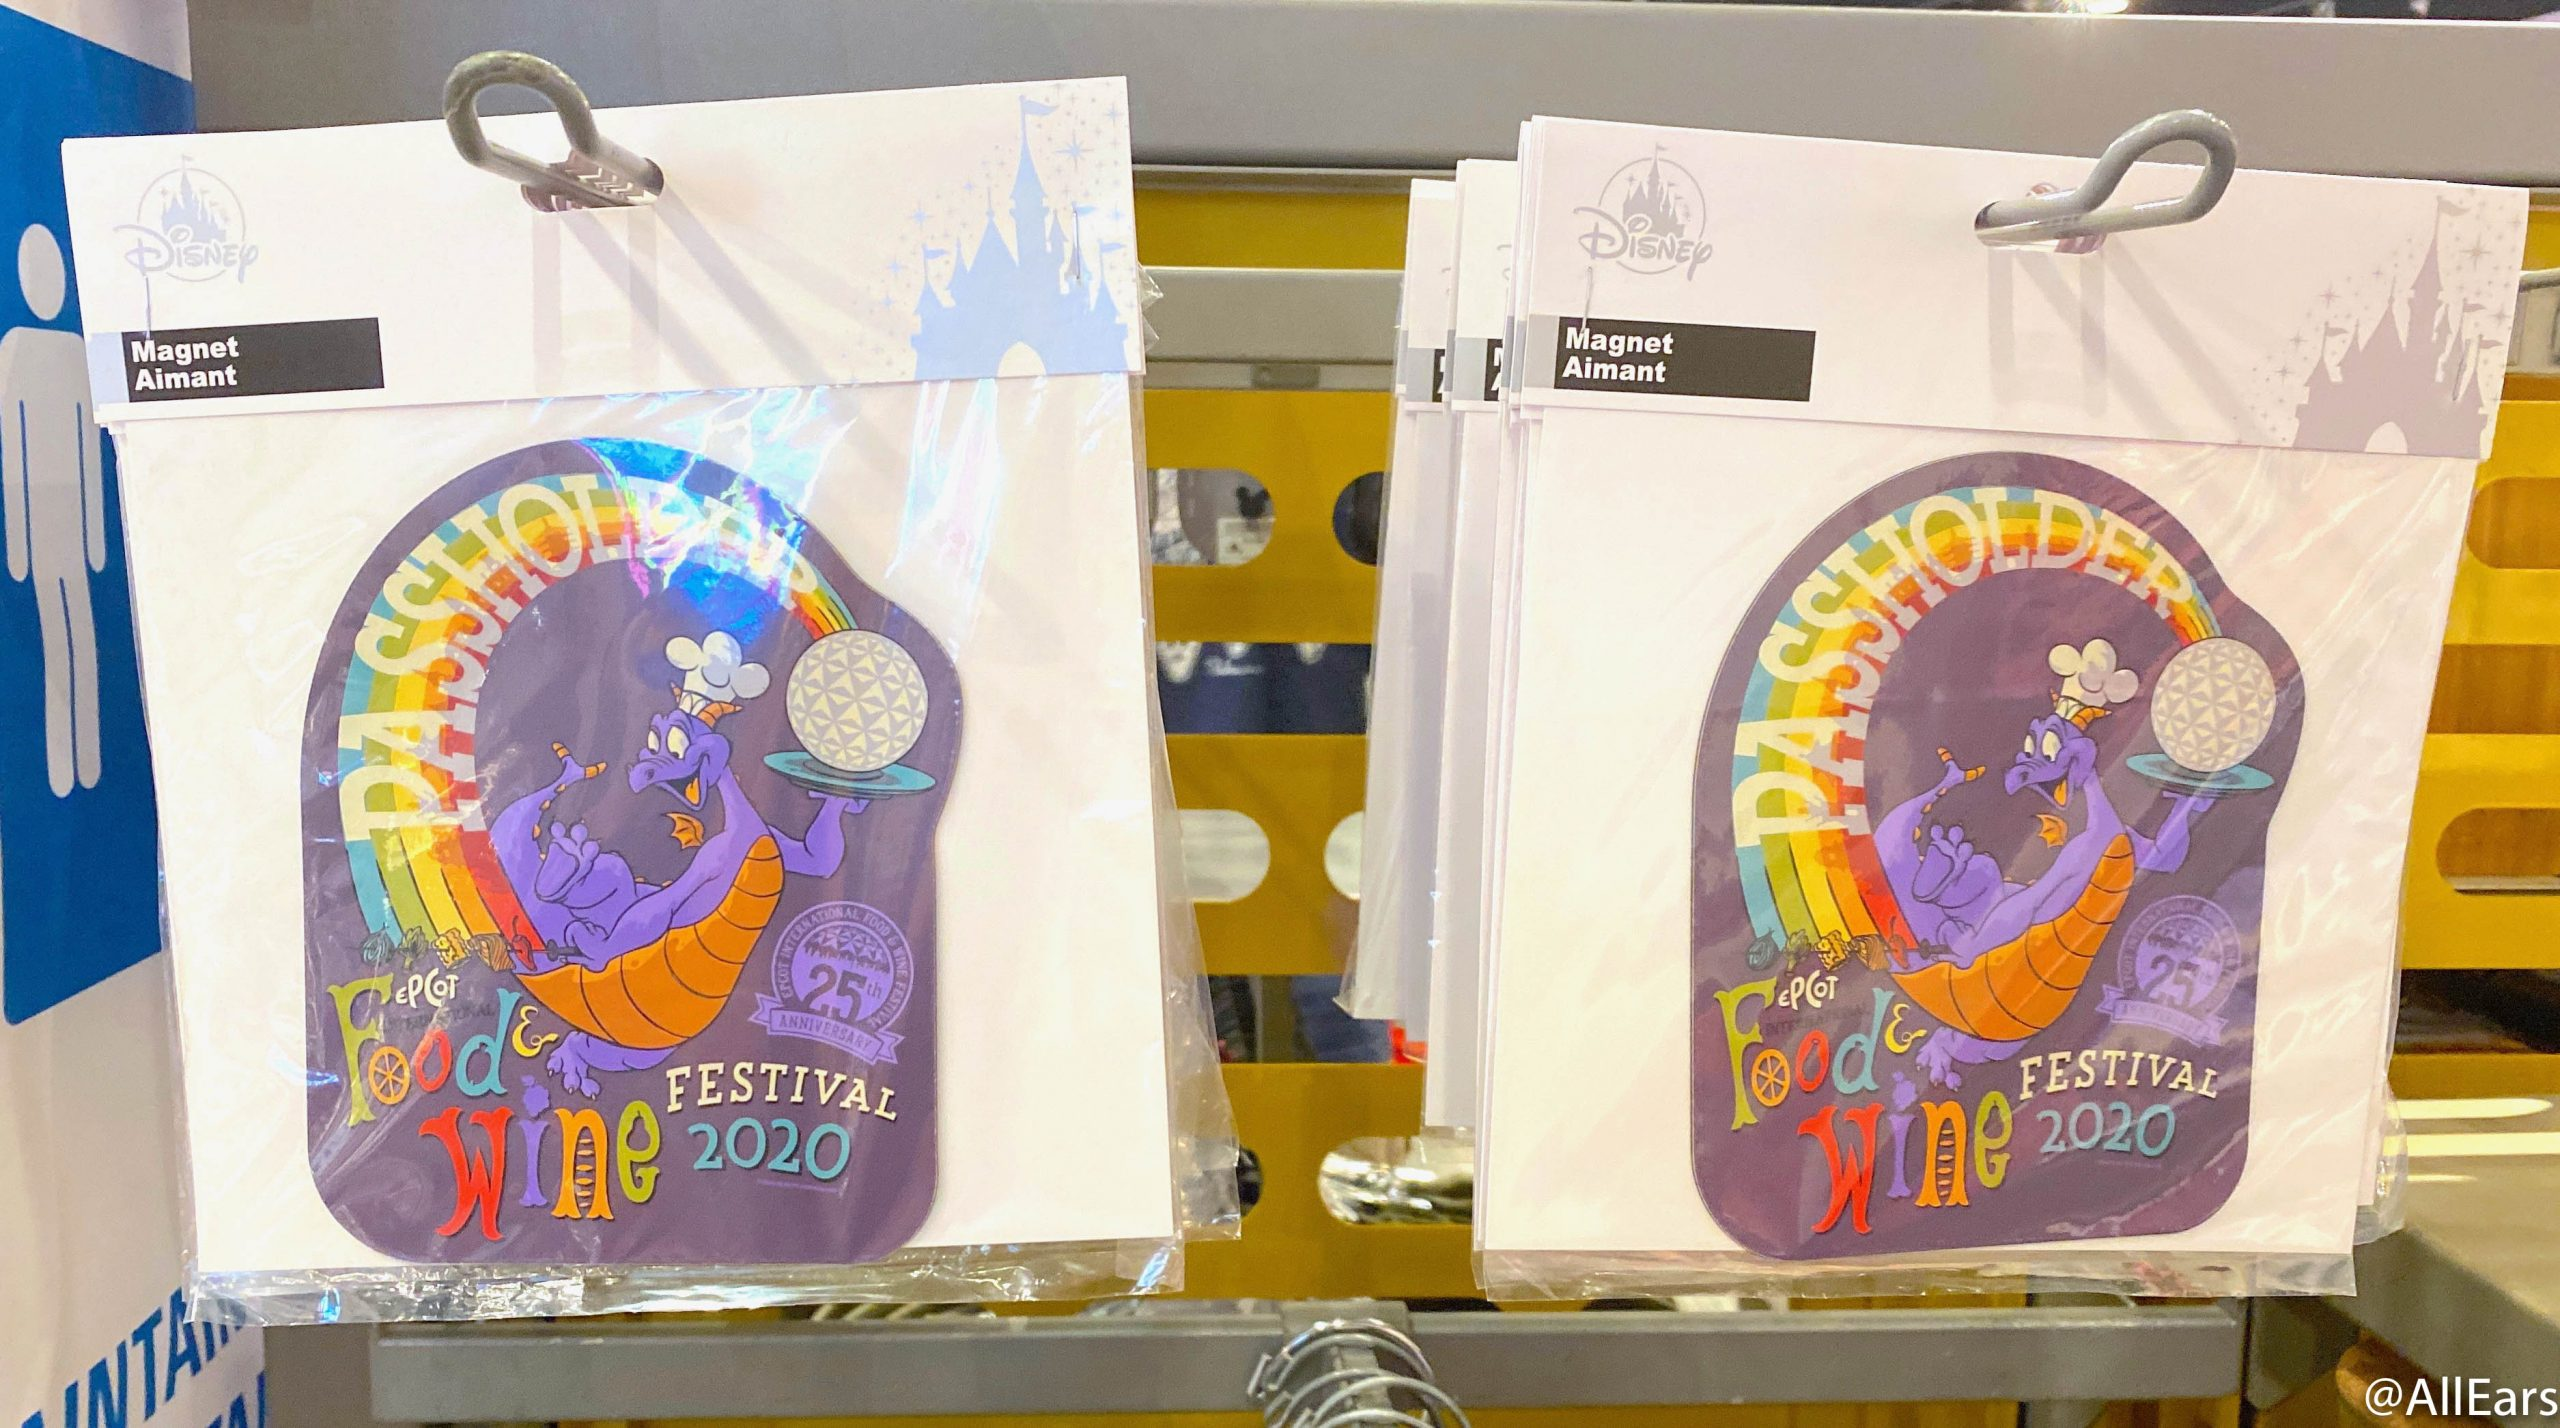 Figment Used His Colorful Imagination To Create The Newest Annual Passholder Magnet For The Epcot Food And Wine Festival Allears Net